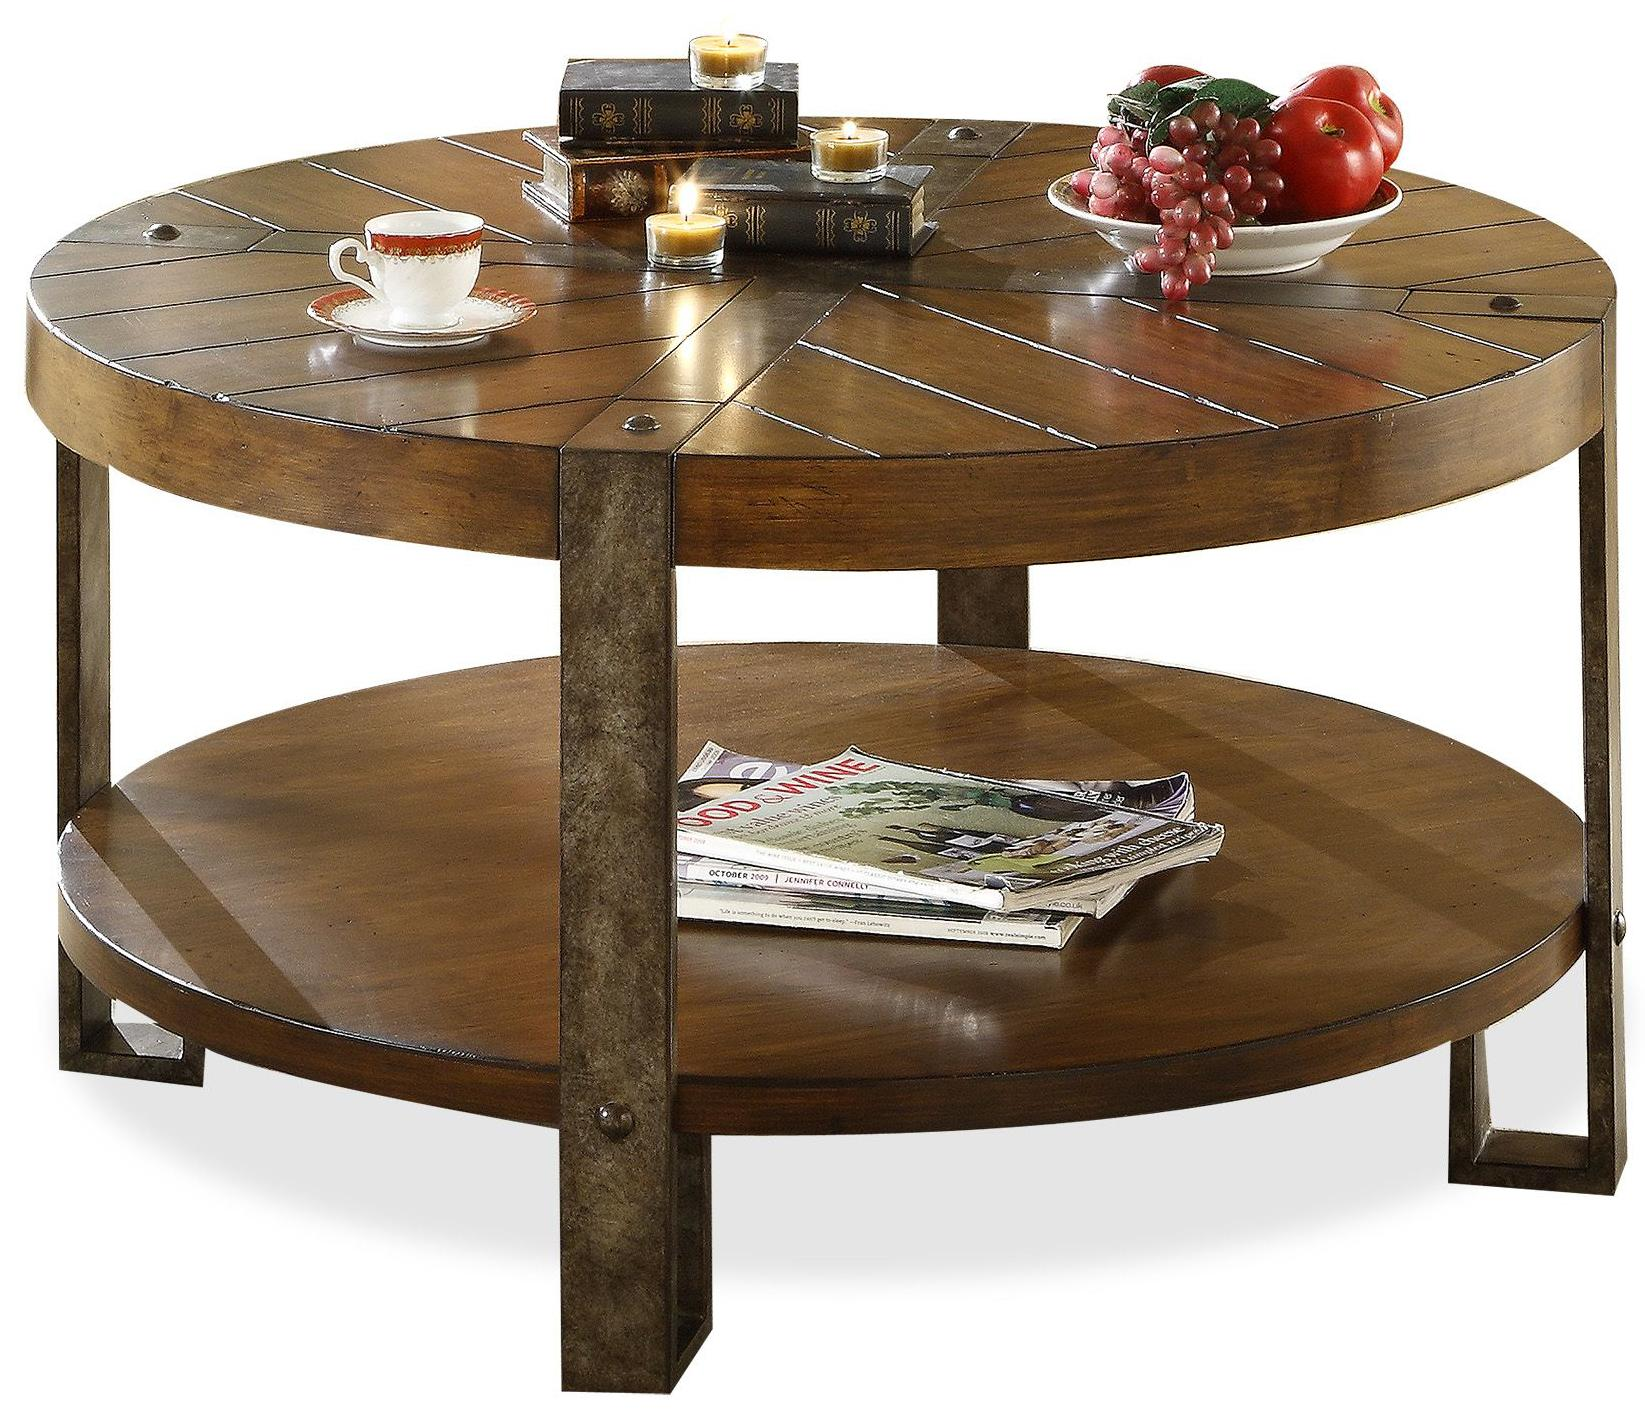 Furniture Old And Vintage Round Coffe Table With Wood Top And Metal Base Plus Bookshelf Round Wooden Coffee Table With Drawers (Image 3 of 10)